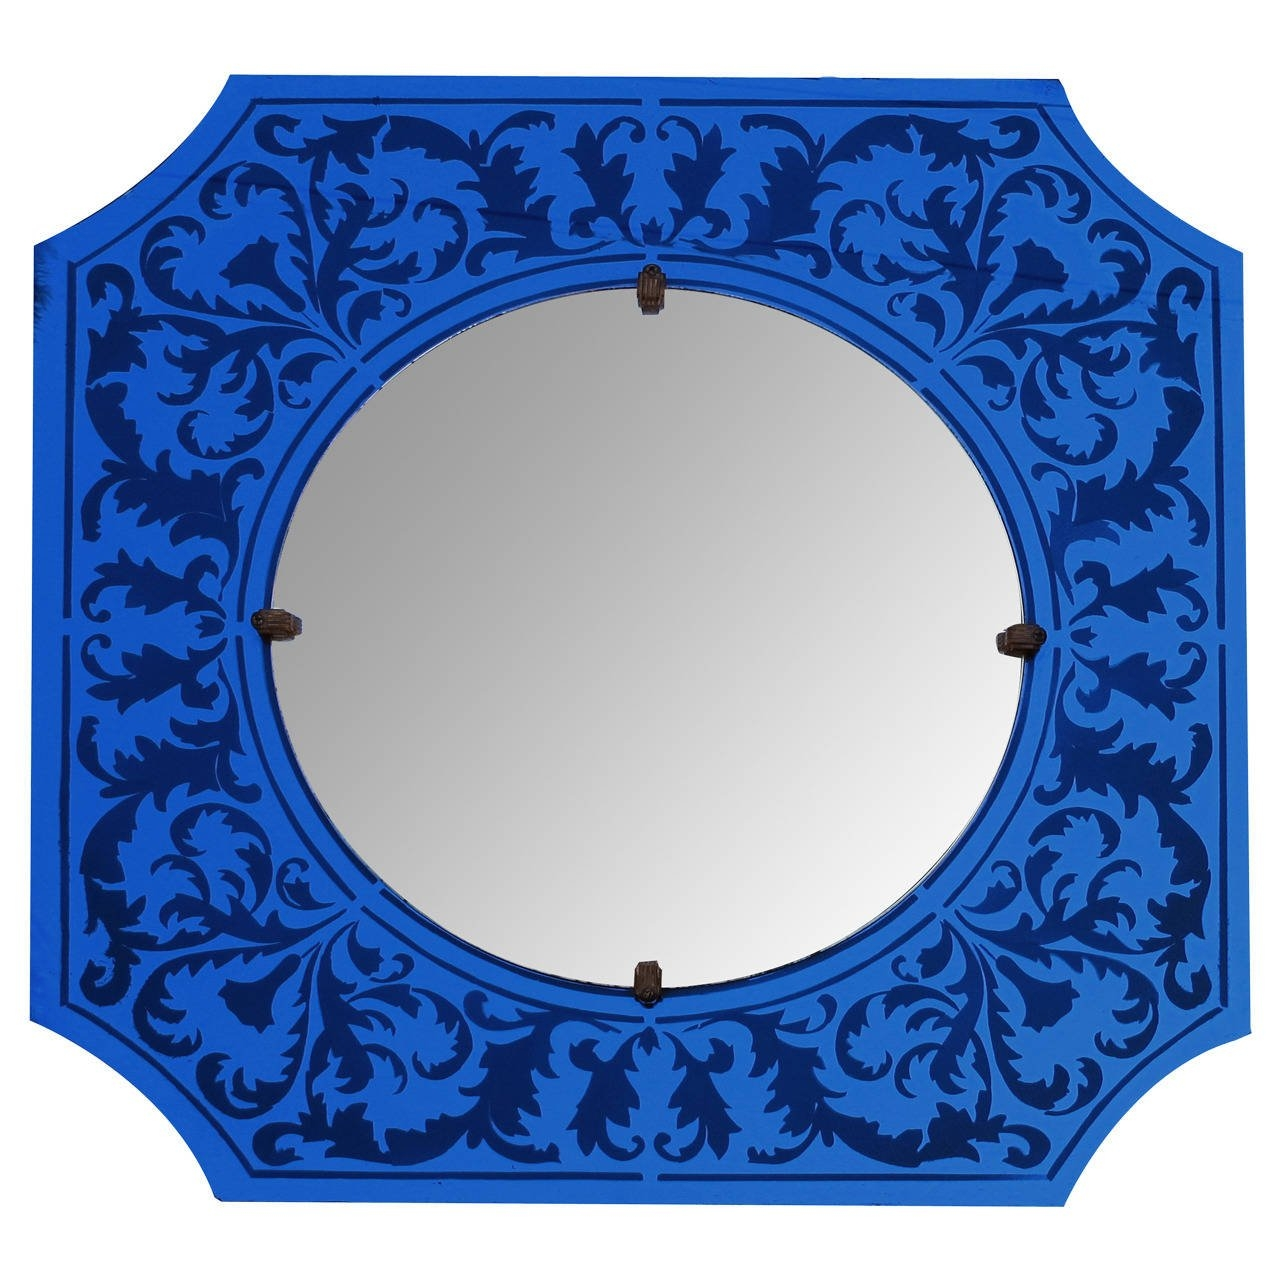 Stylish American Art Deco Bulls Eye Mirror With Etched Cobalt With Regard To Mirror With Blue Frame (Image 12 of 15)